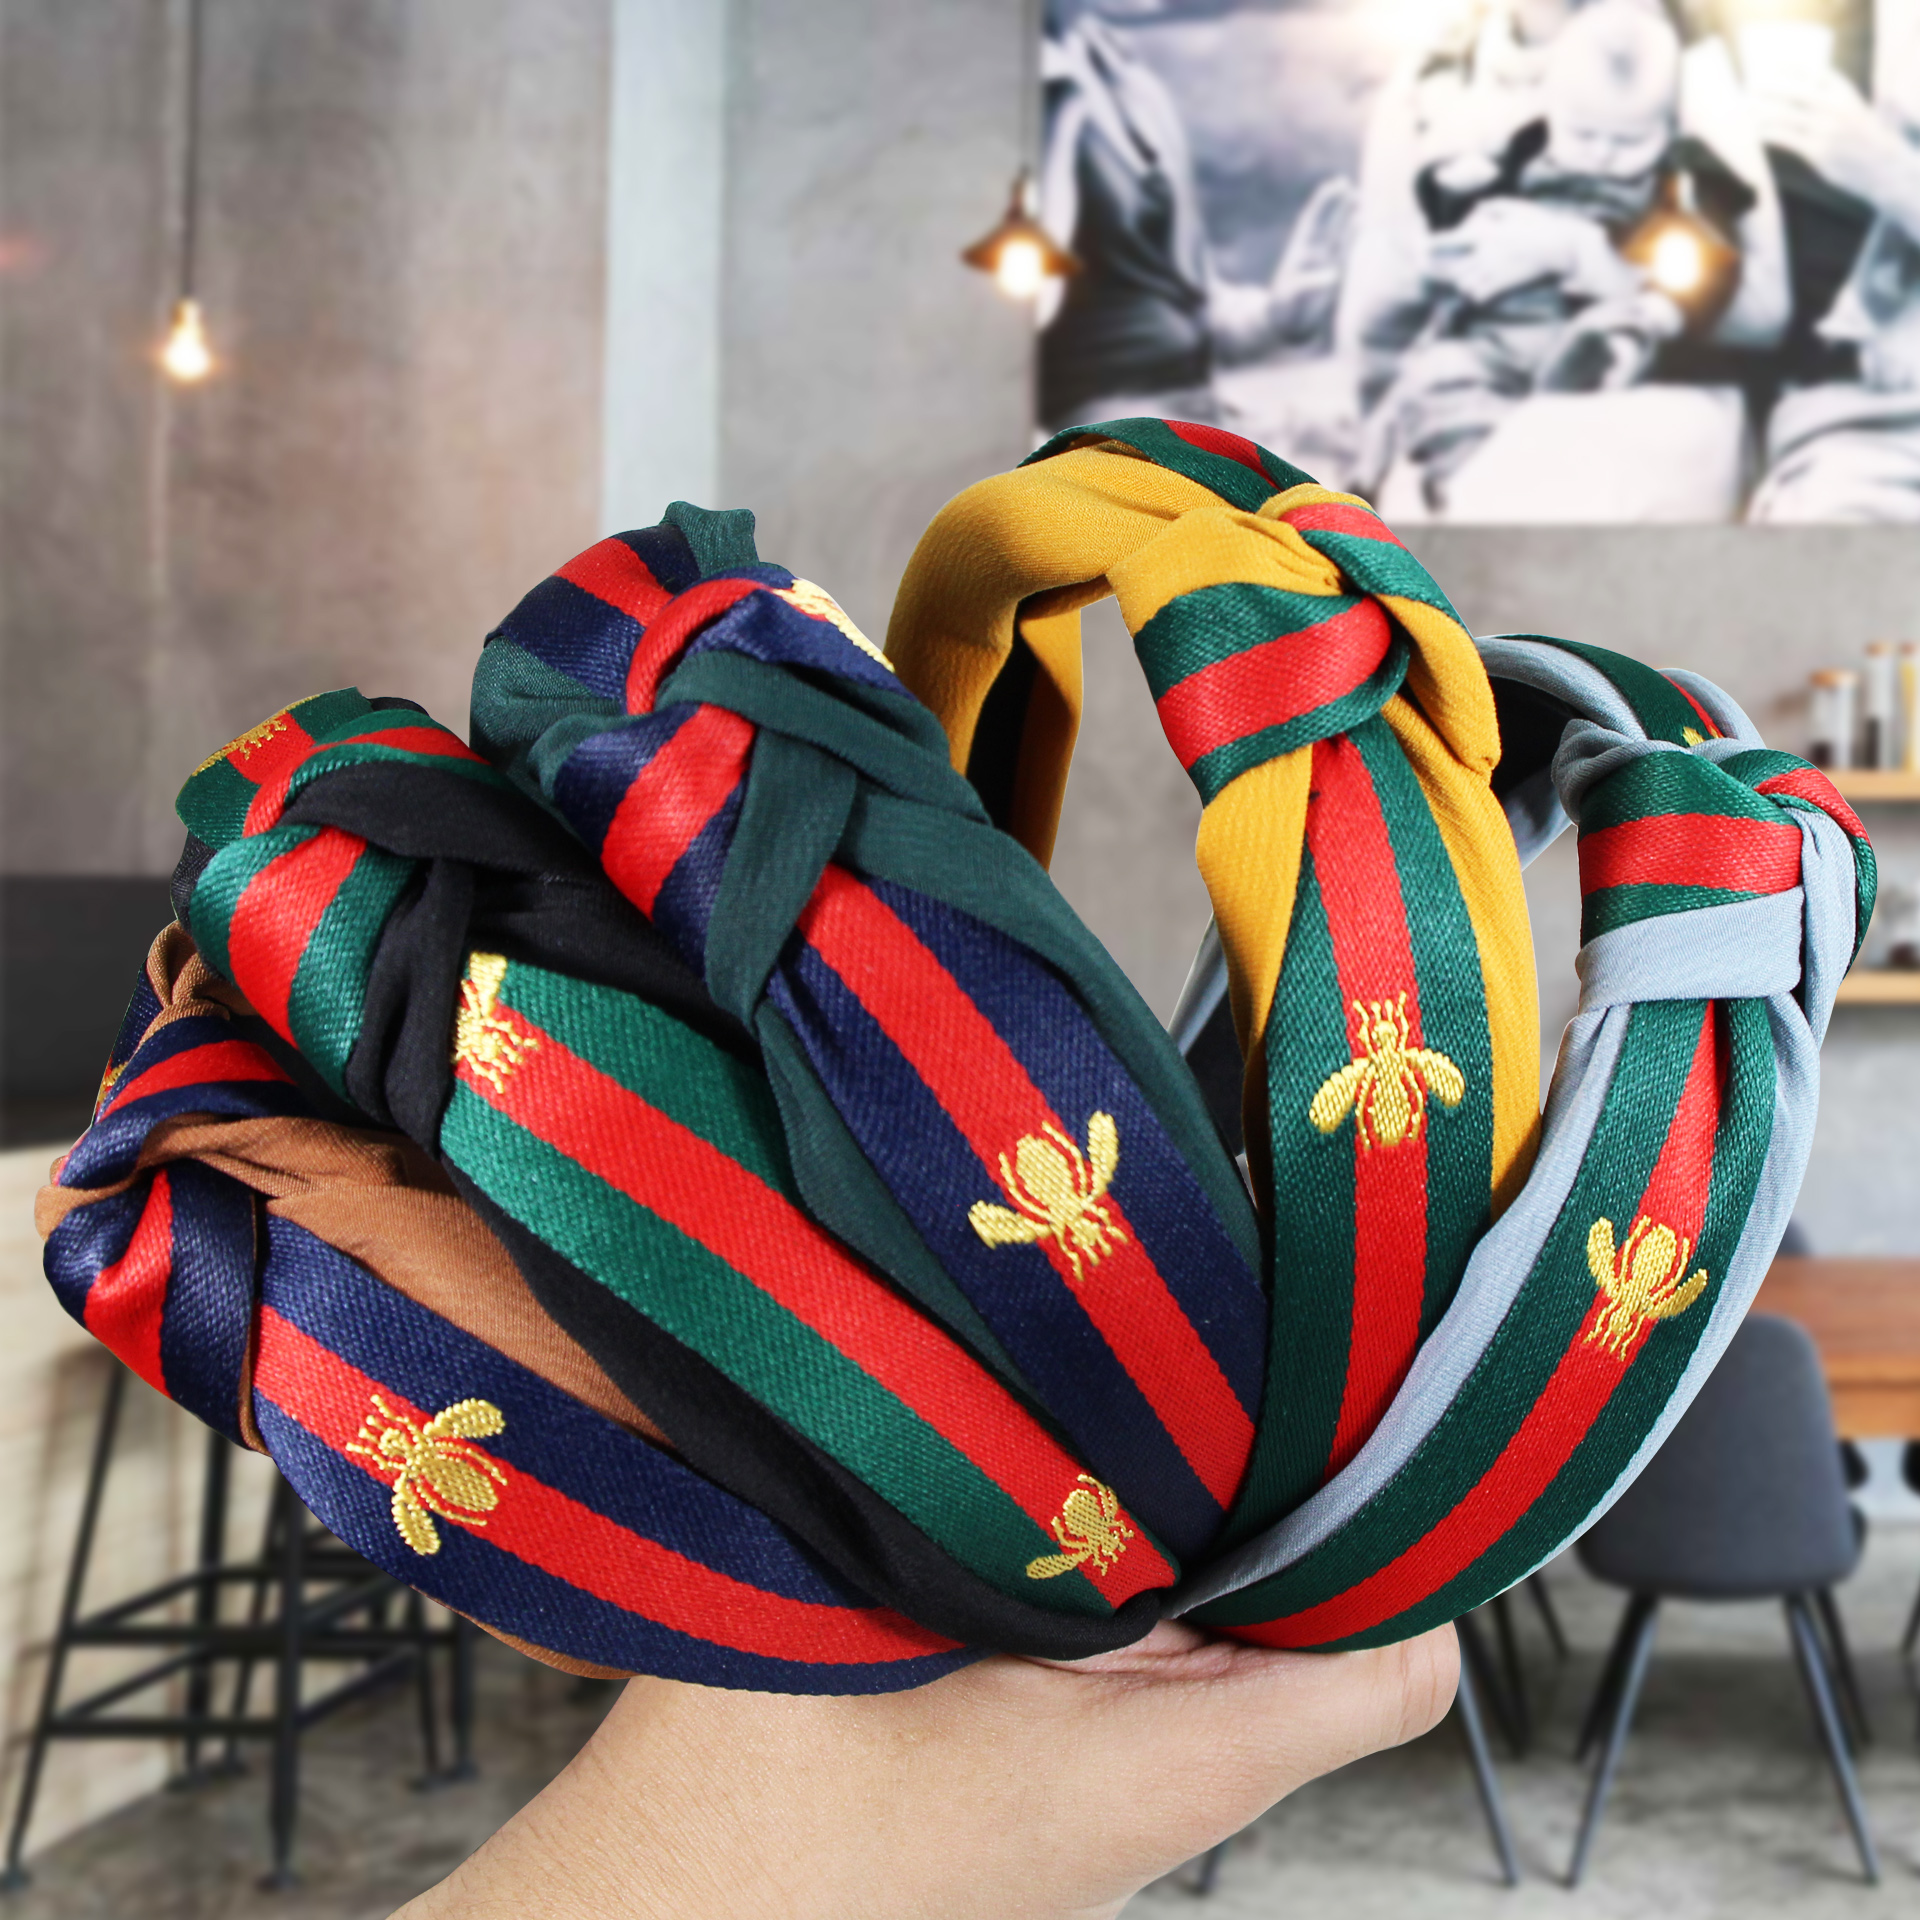 Korean Style Hairband Headband For Women Wide Side Knotted Red And Green Striped Hair Band Bee Wide Side Hairpin Headbands